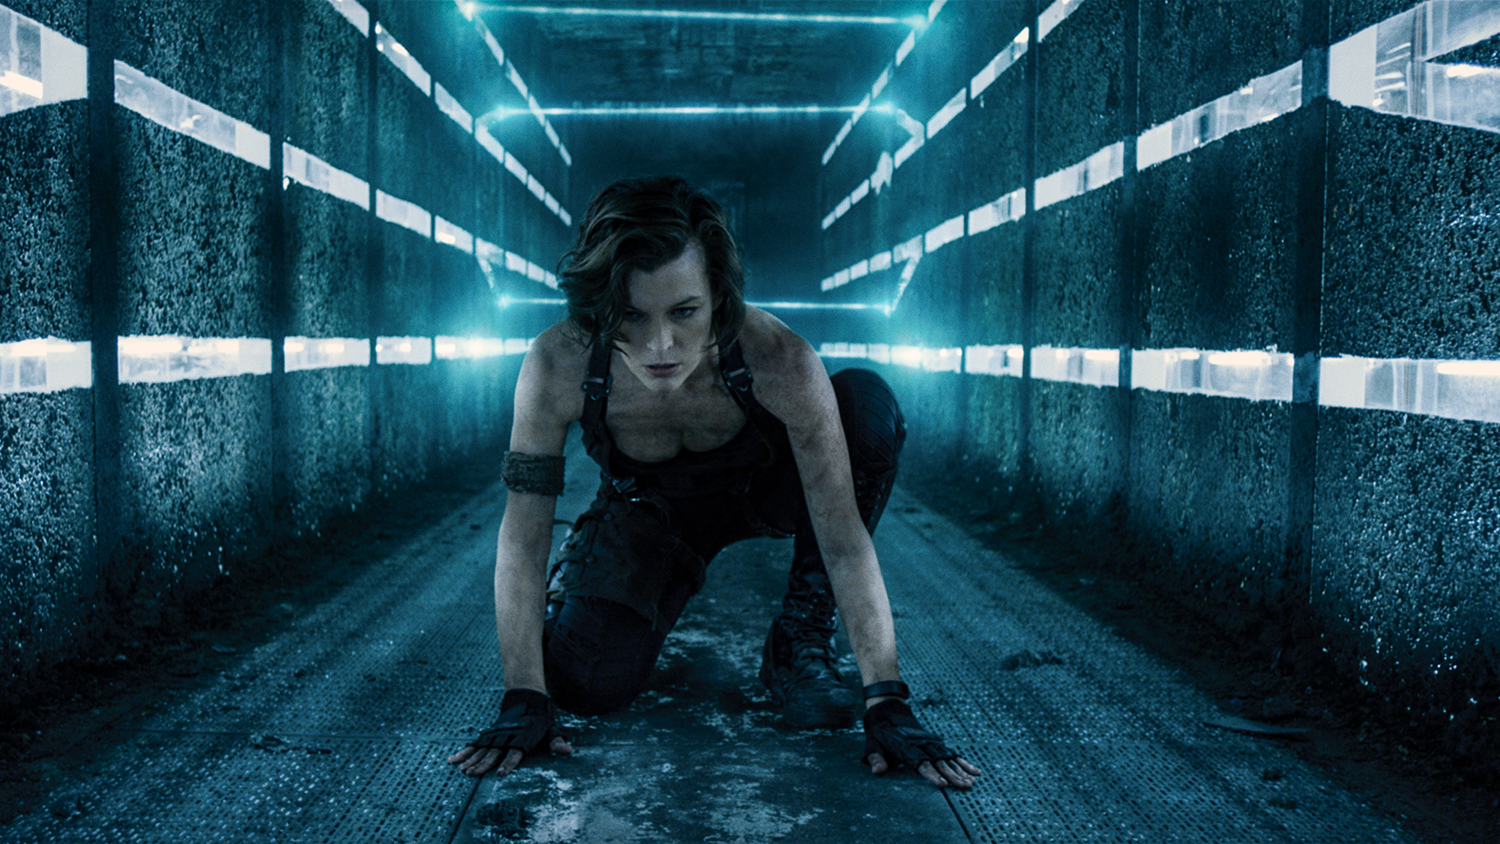 Resident Evil The Final Chapter Cast On Reclaiming: As Resident Evil Movie Franchise Wraps Up, A New One Is